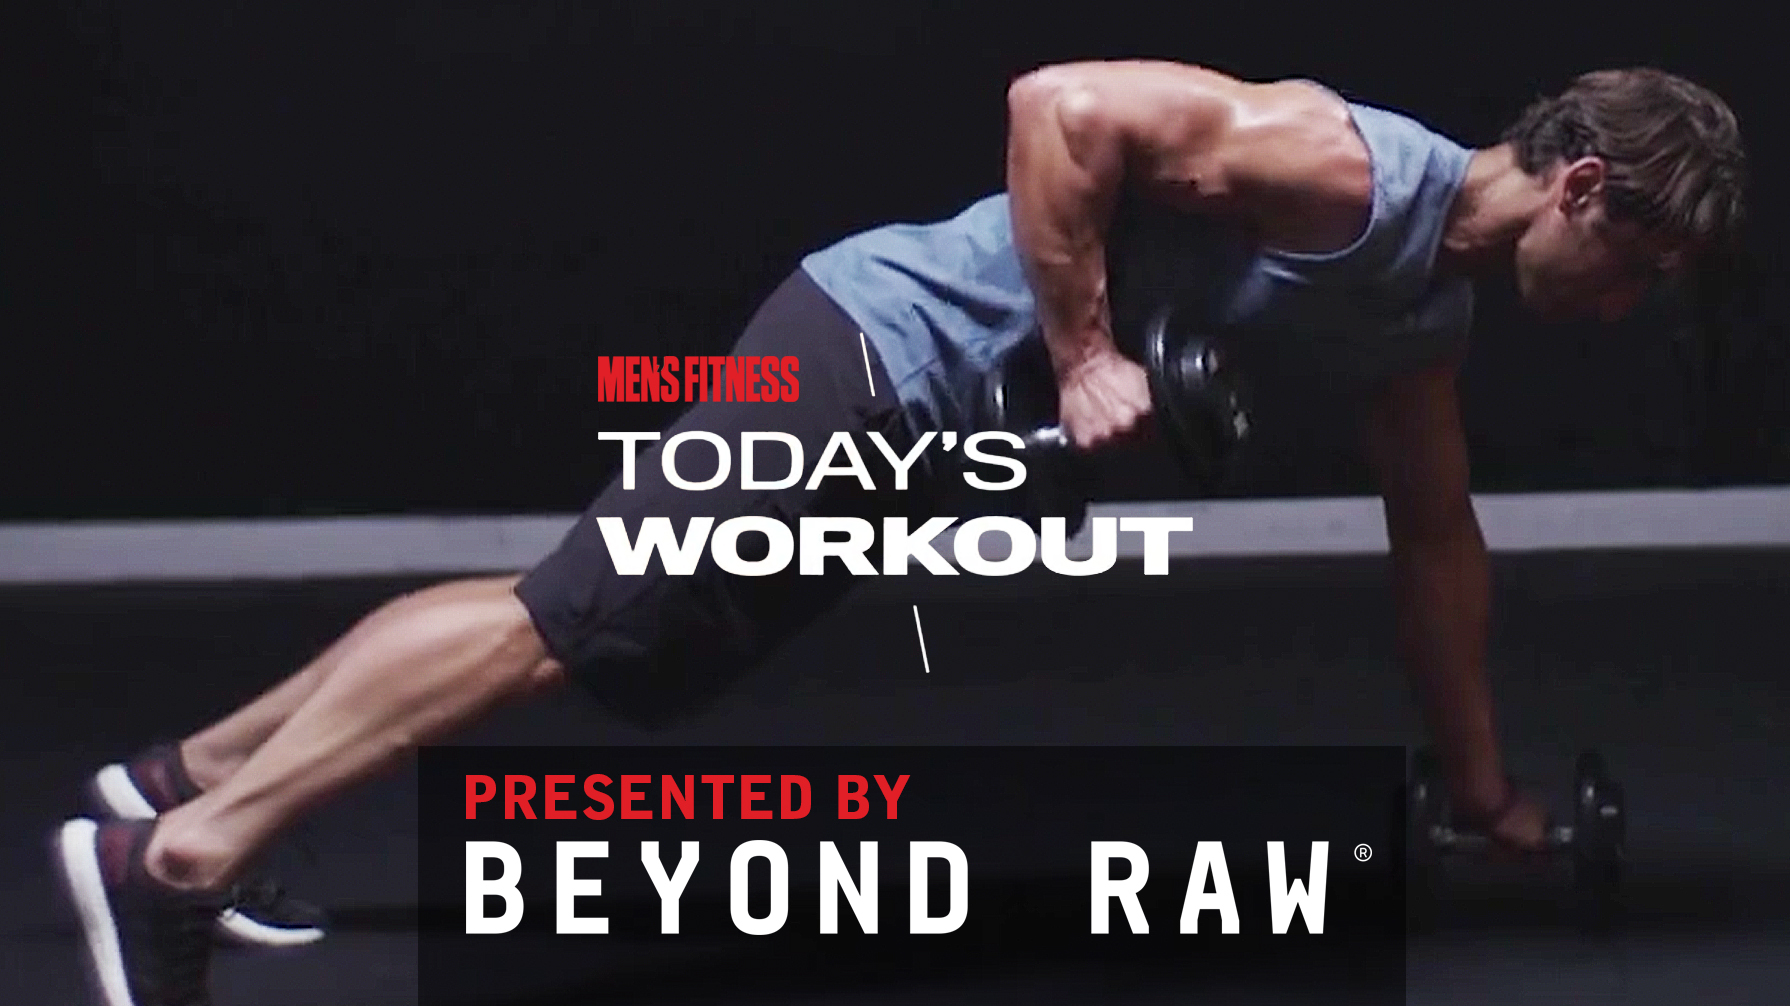 Today's Workout 37: The 3-move circuit for total-body strength